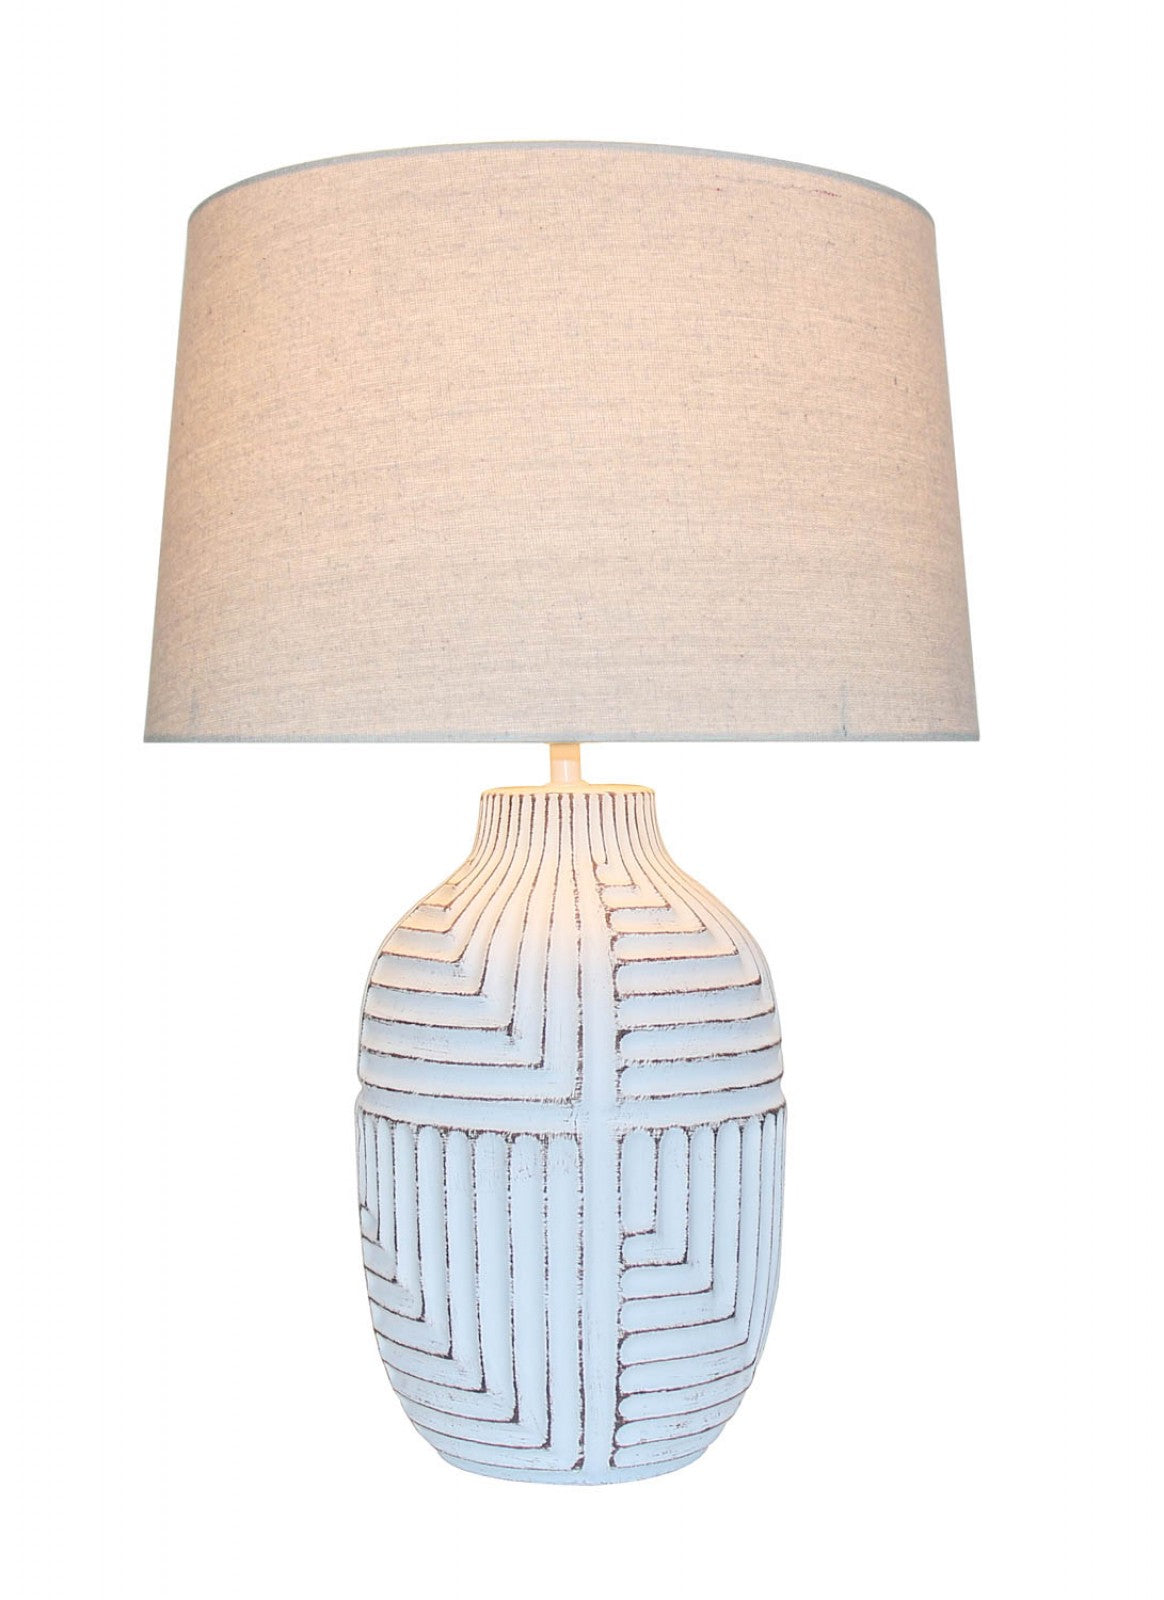 Kuba table lamp